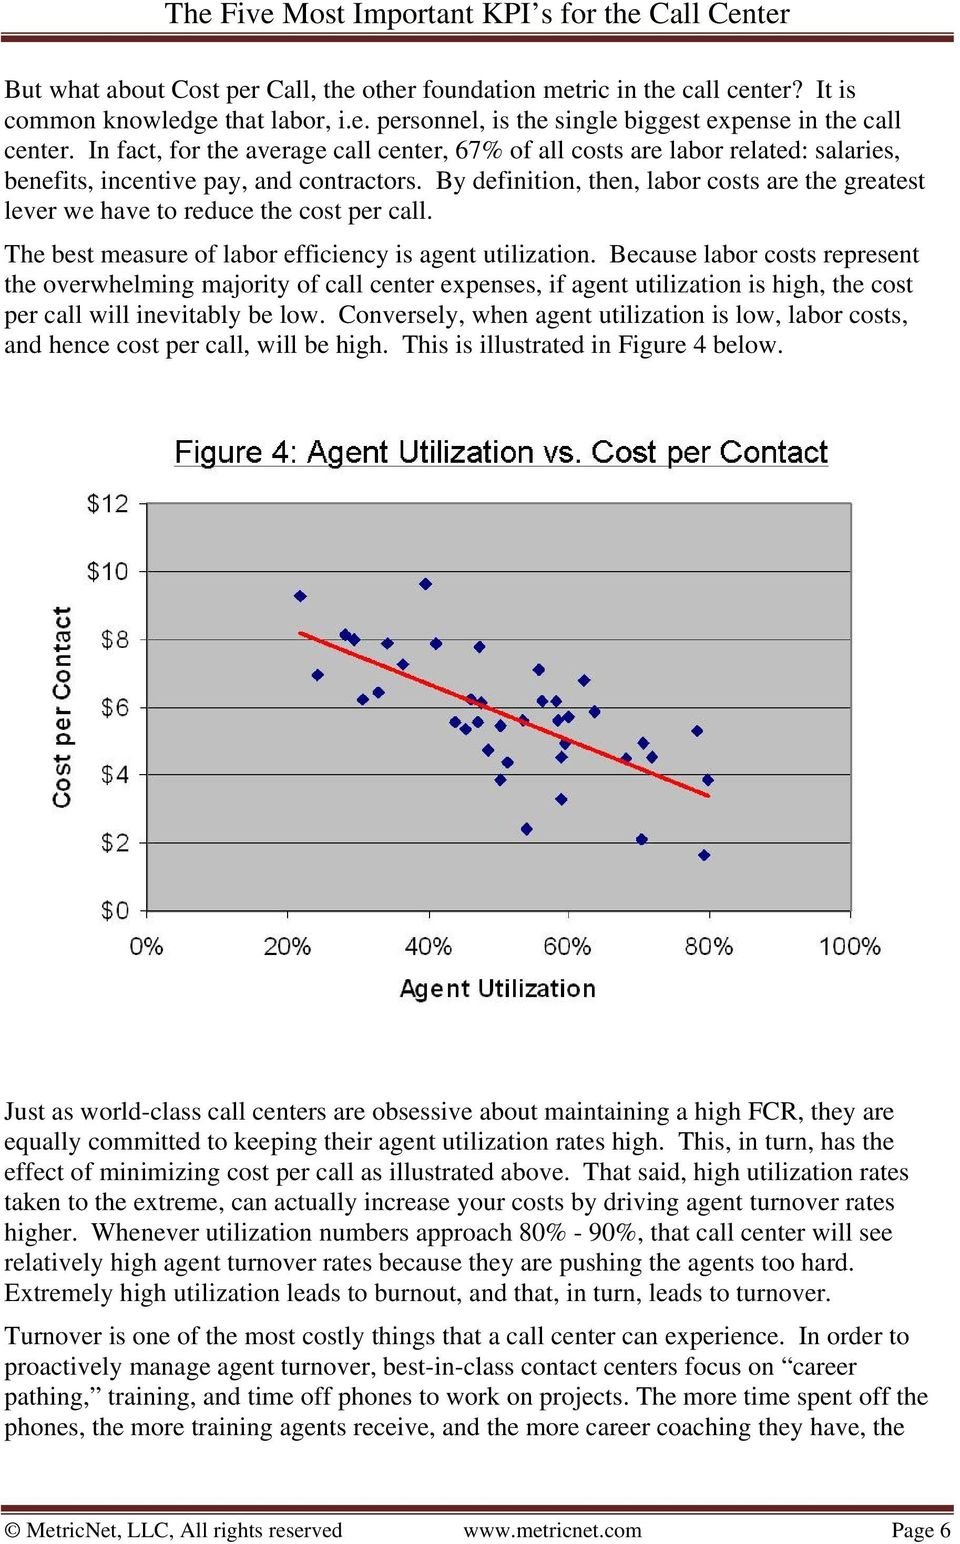 By definition, then, labor costs are the greatest lever we have to reduce the cost per call. The best measure of labor efficiency is agent utilization.